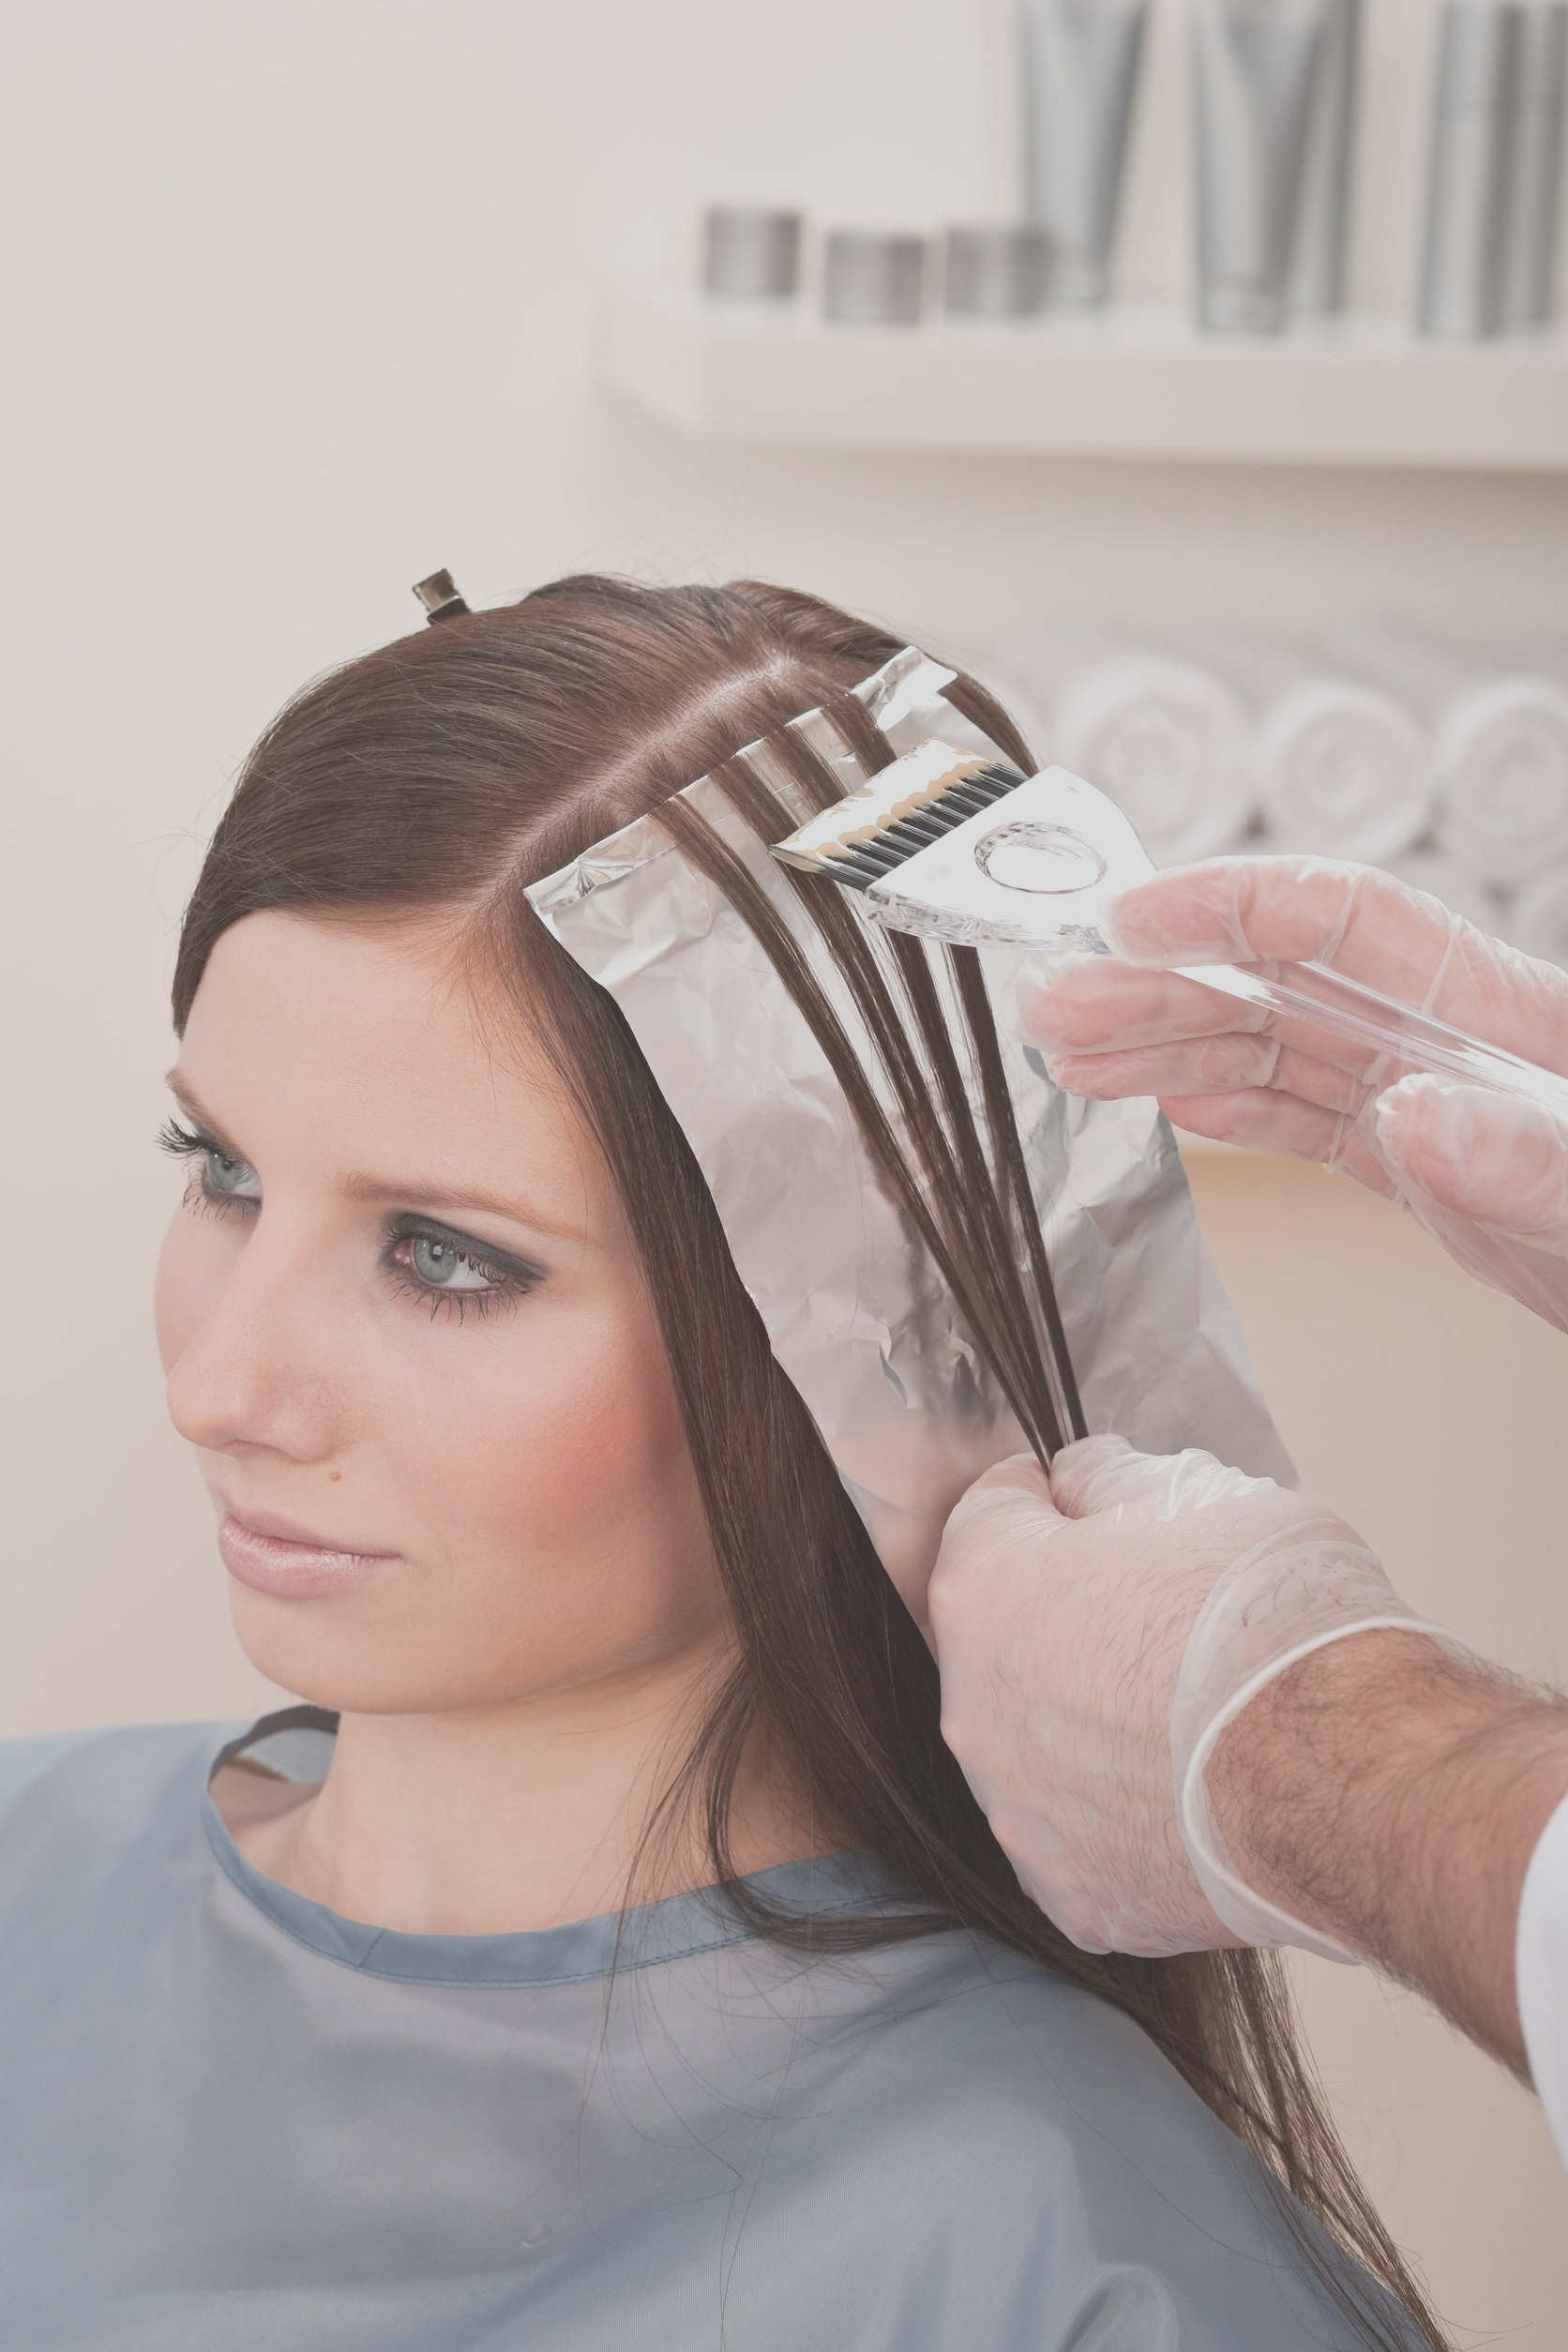 searching for great hair salons